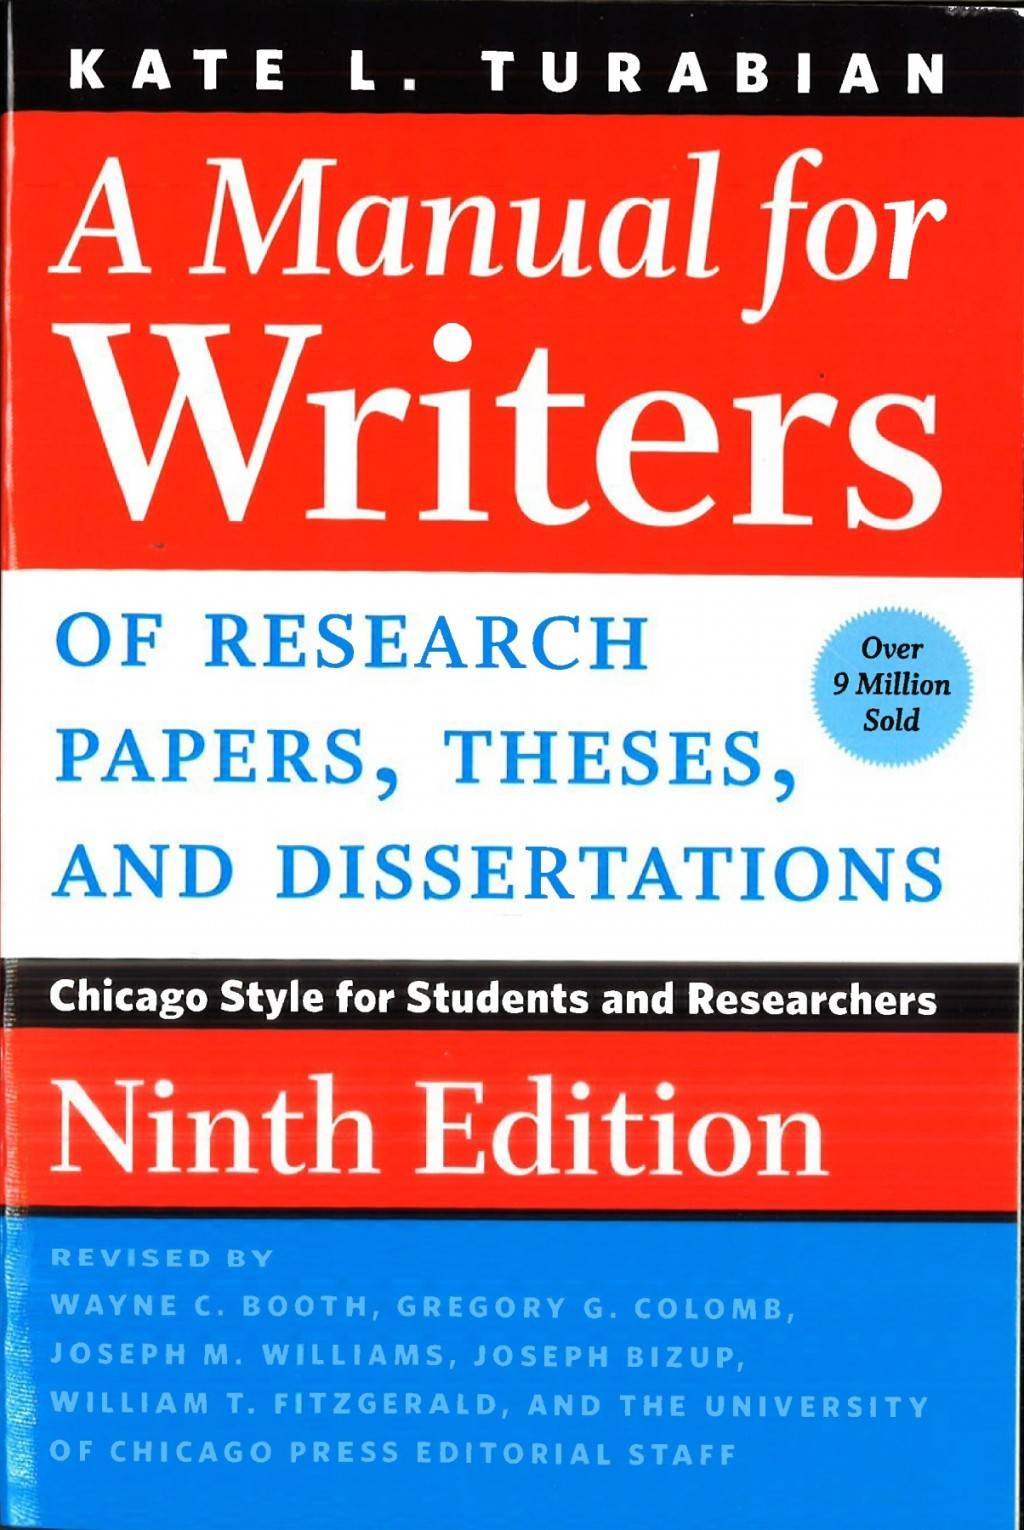 008 Research Paper Manual For Writers Of Papers Theses And Sensational A Dissertations 8th Edition Pdf Eighth Large